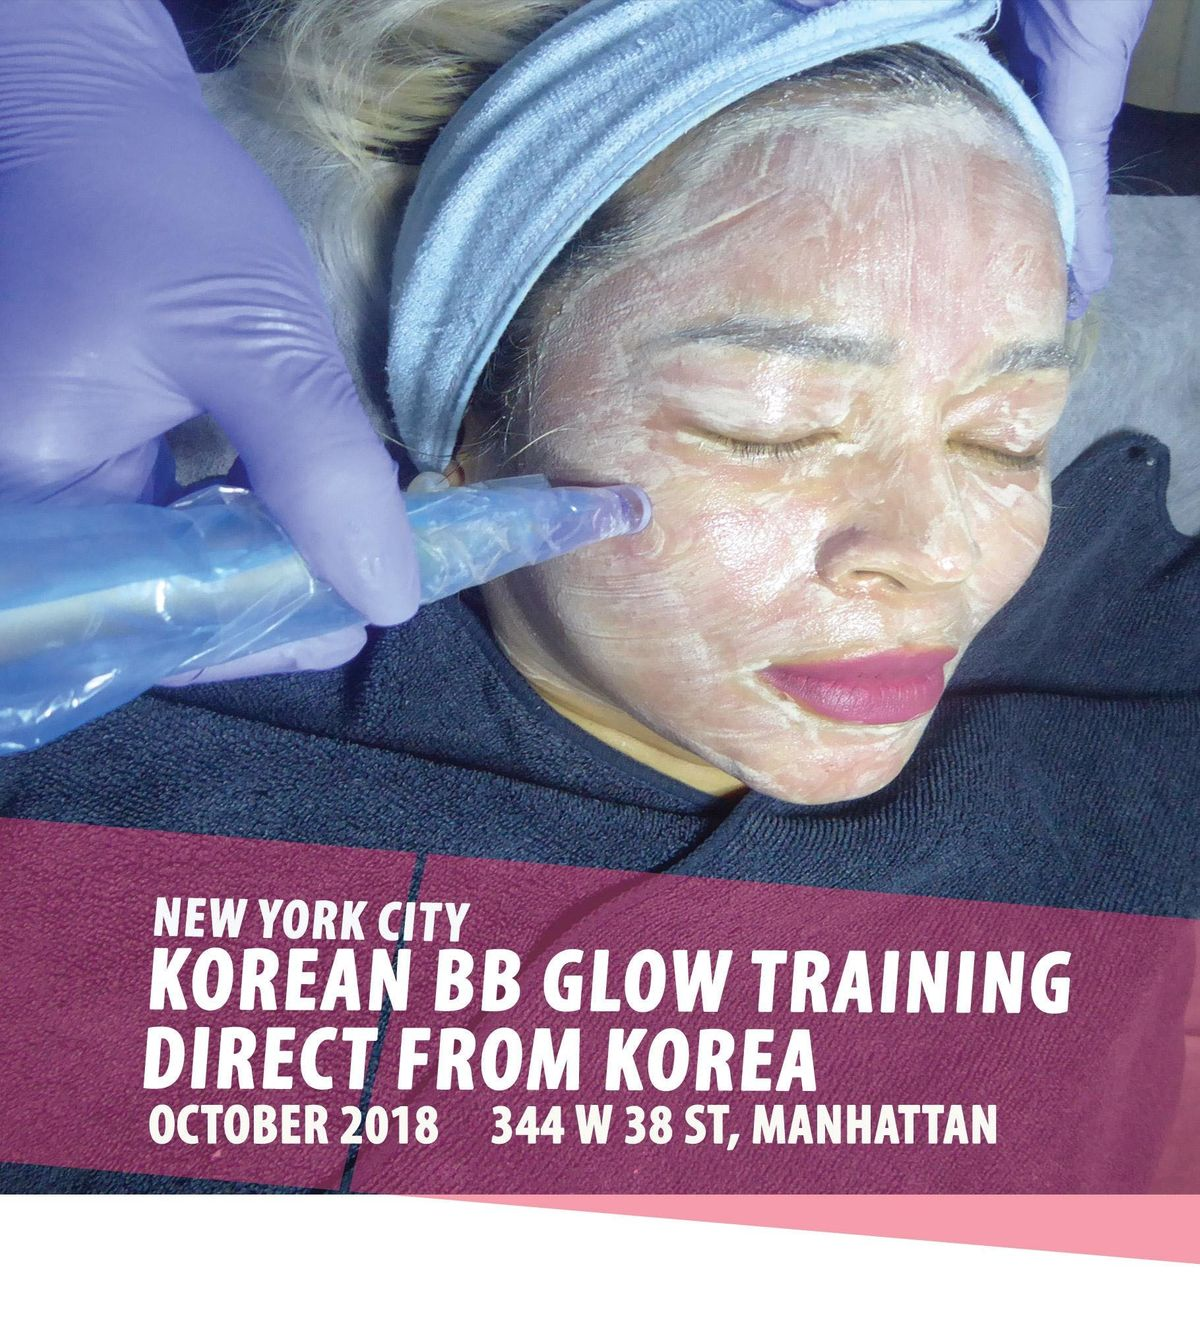 KOREAN WATERSHINE FULL BB GLOW TRAINING at 344 W 38th St, New York